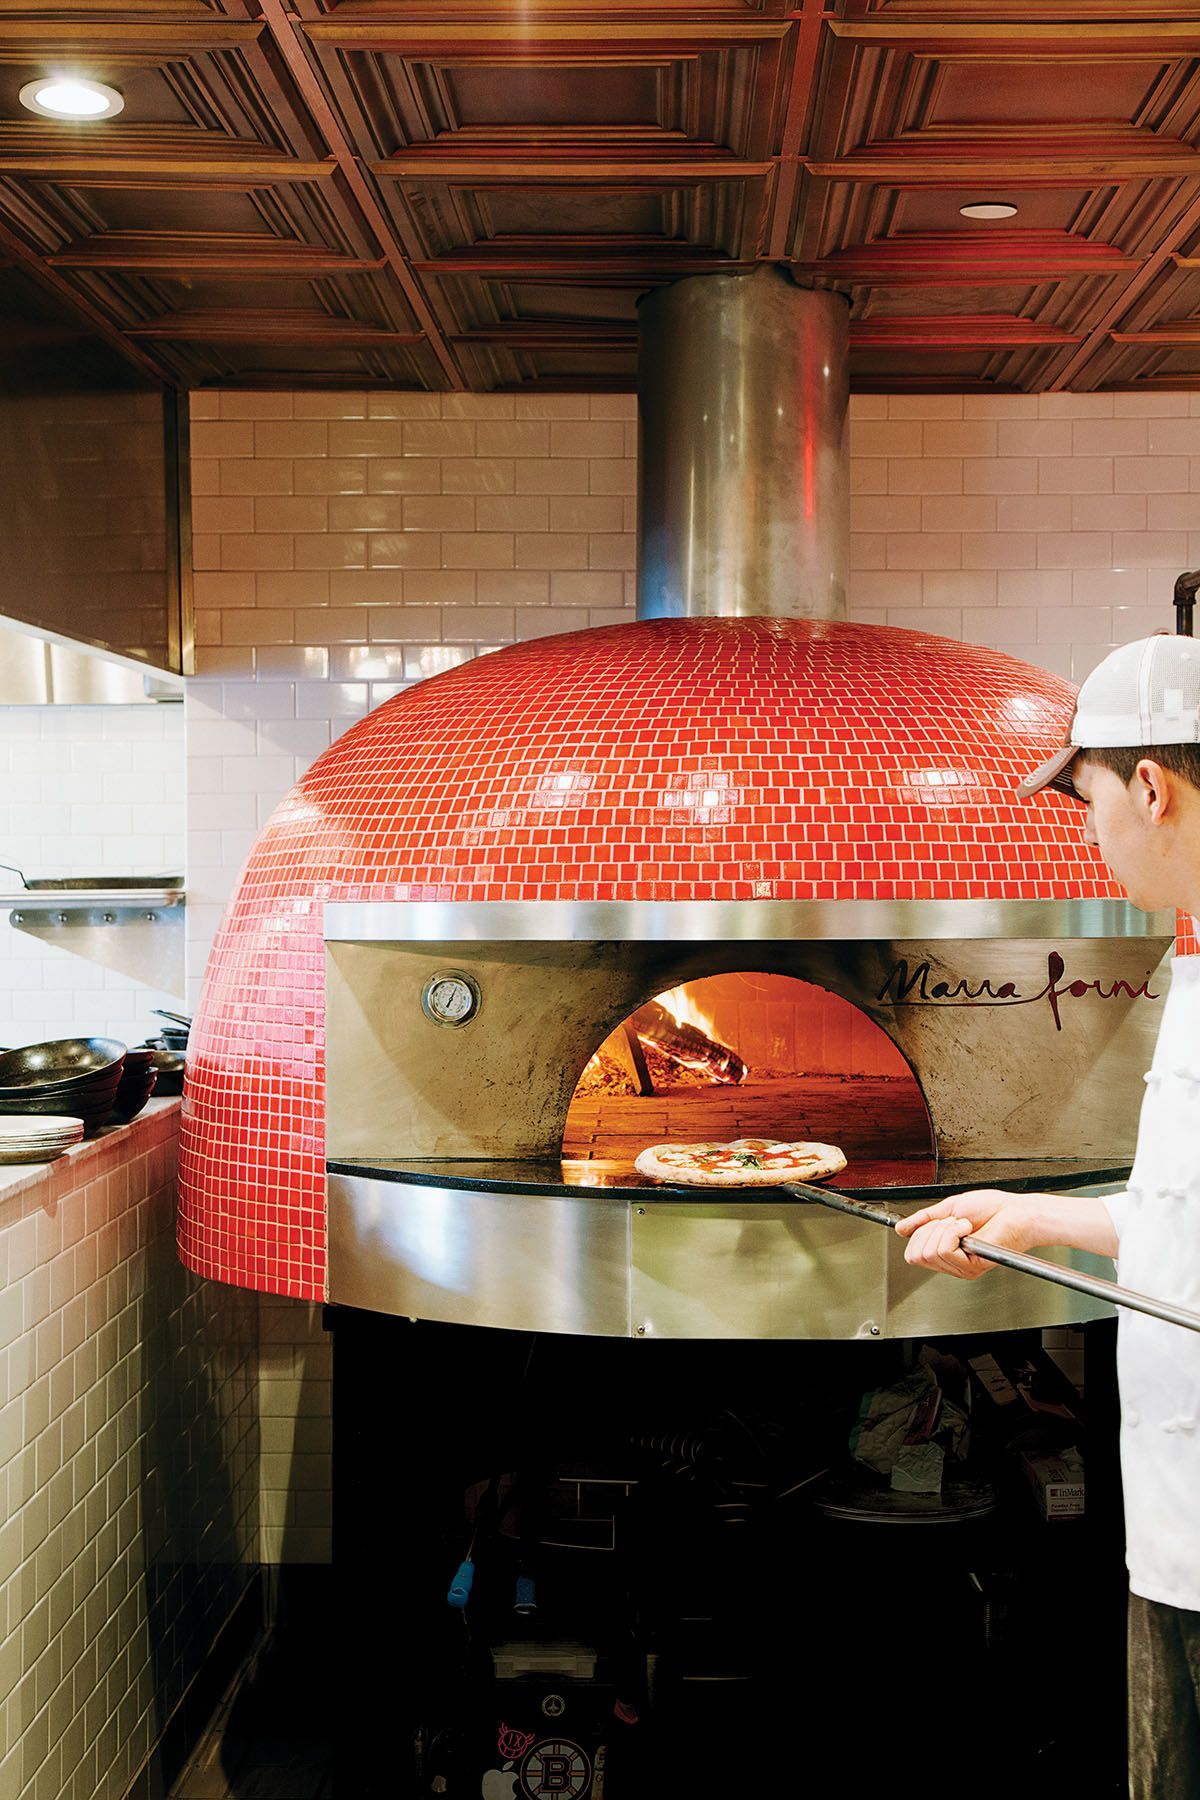 A Look At Pastoral S Tricked Out Pizza Oven Pizza Oven Wood Fired Pizza Oven Italian Pizza Oven